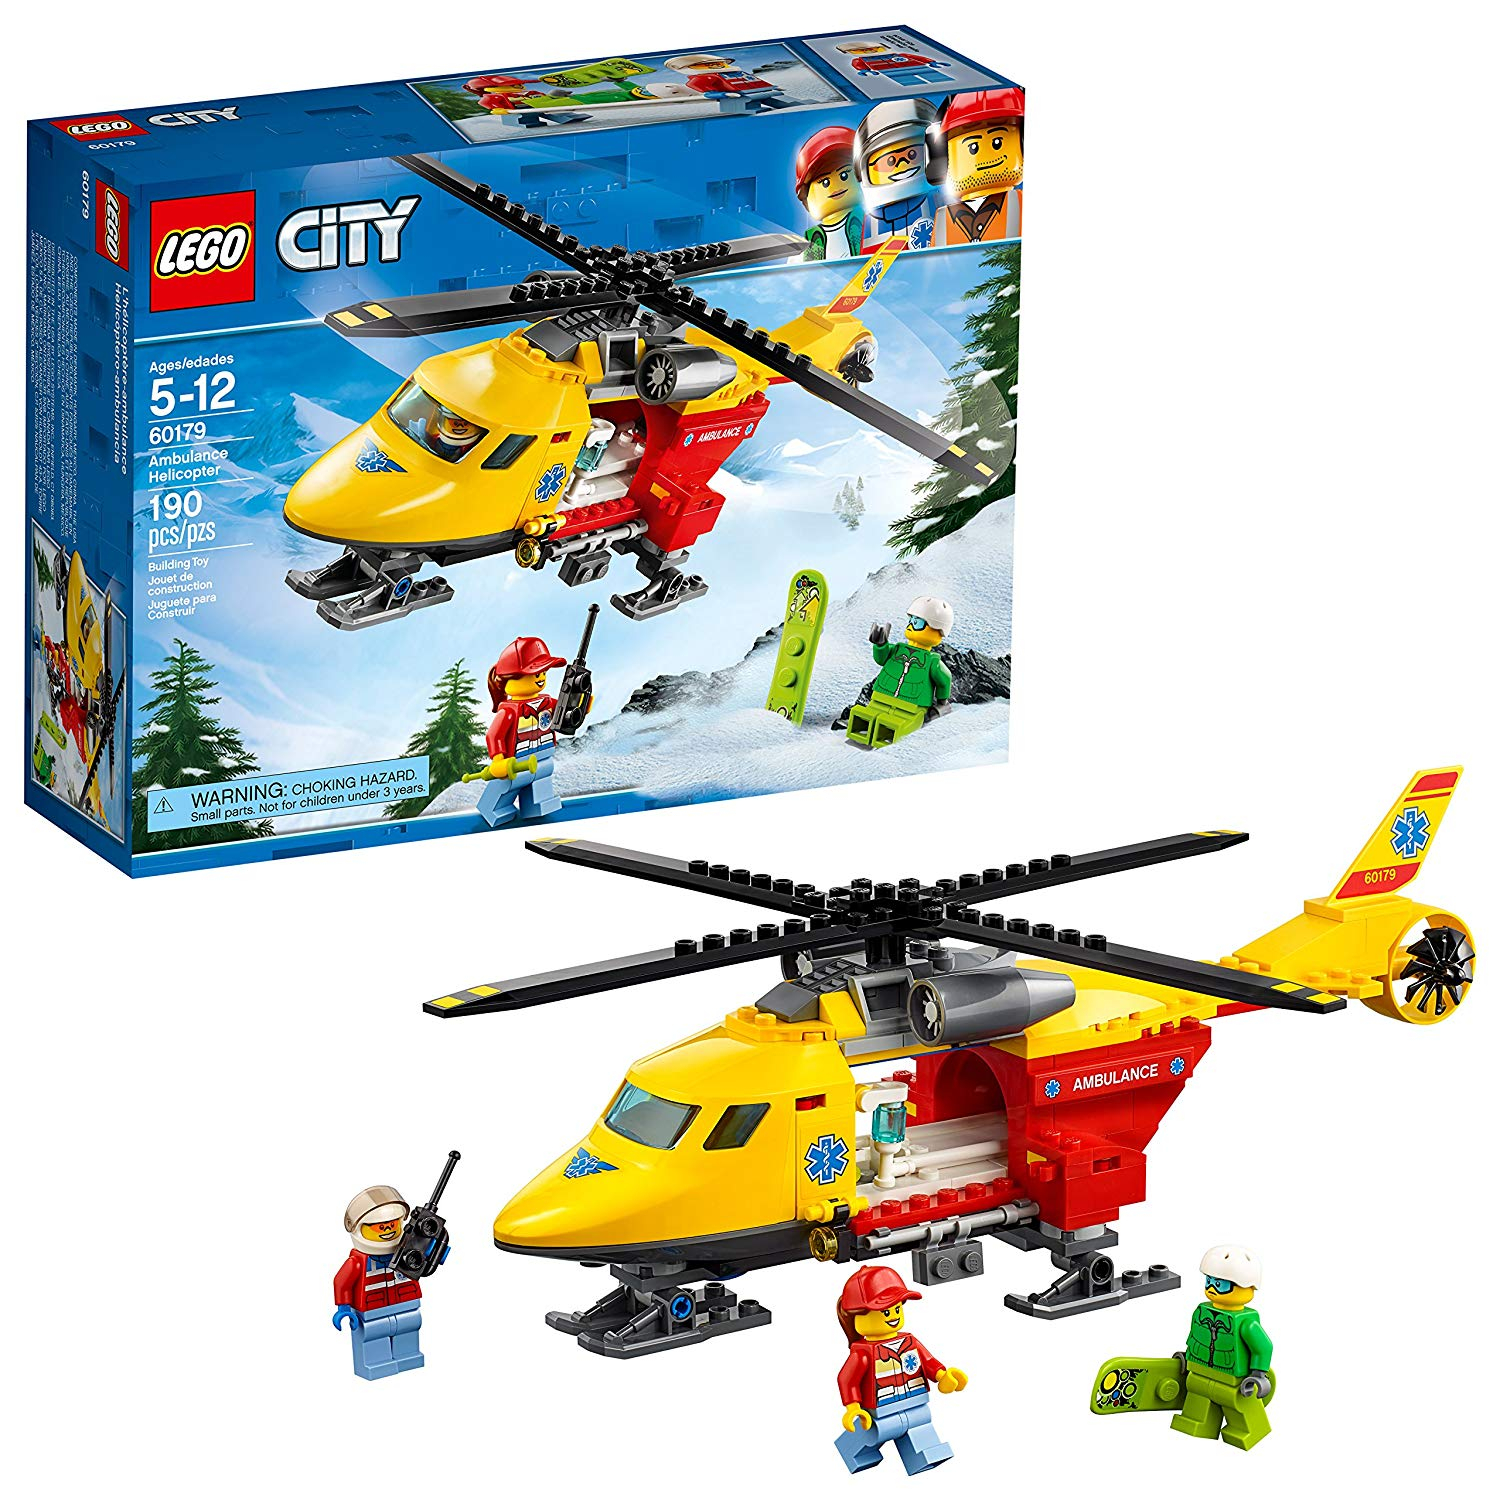 lowest price lego city ambulance helicopter building kit 190 piece